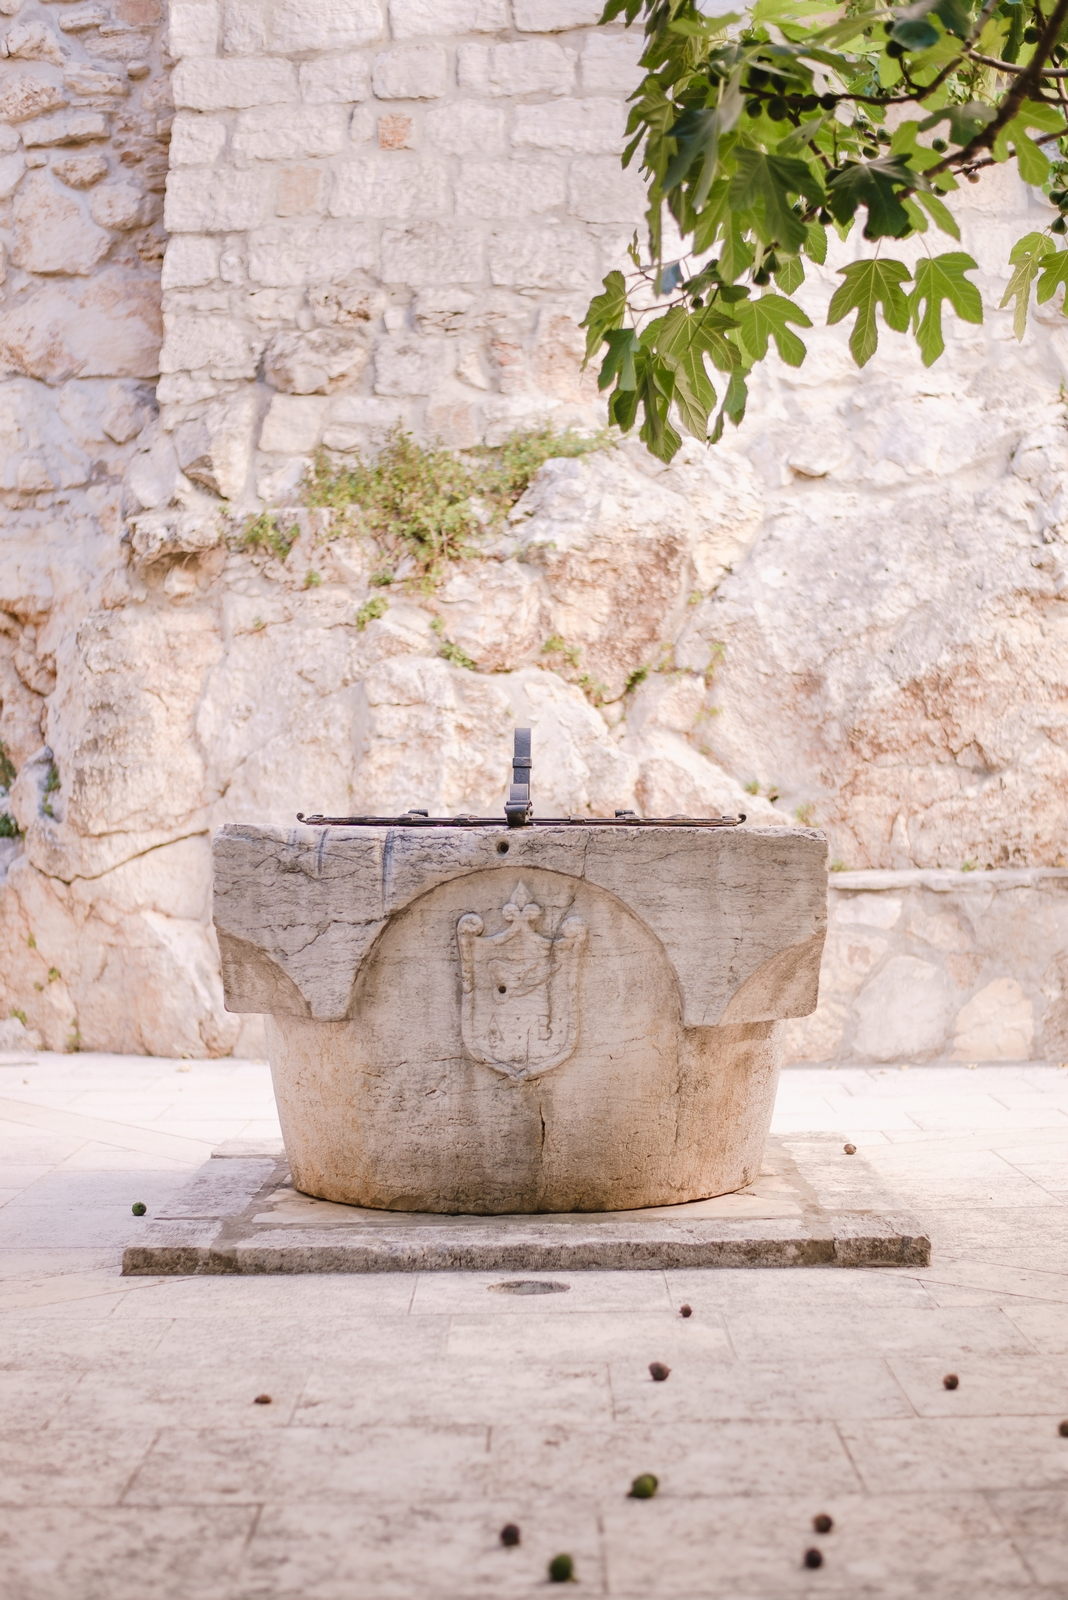 An ancient well in the old town of Rovinj, the Istrian peninsula, Croatia - from travel blog http://Epepa.eu